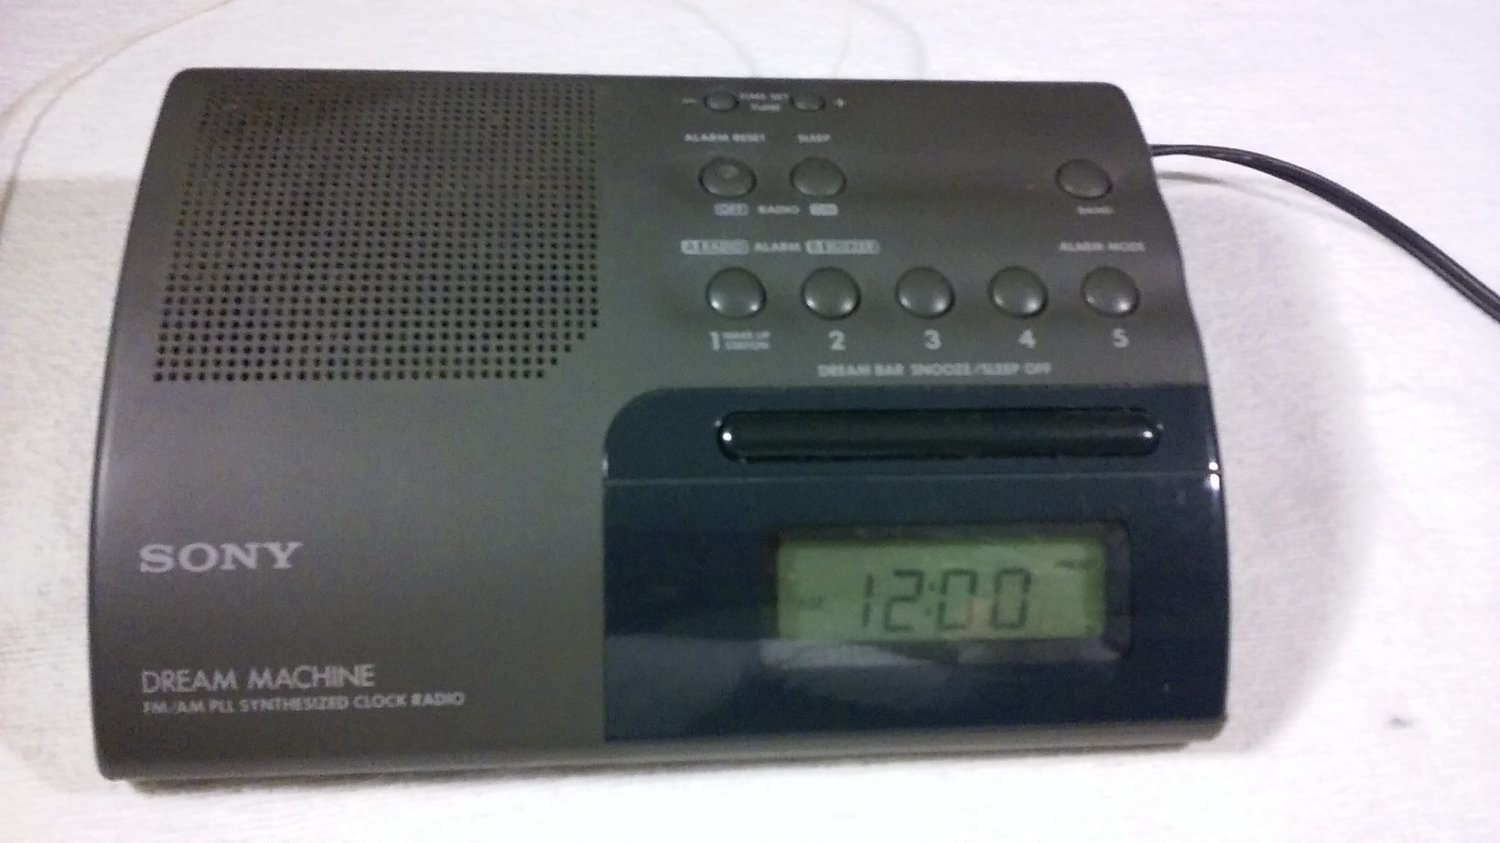 Sony  VTG Sony Dream Machine Alarm Clock Radio